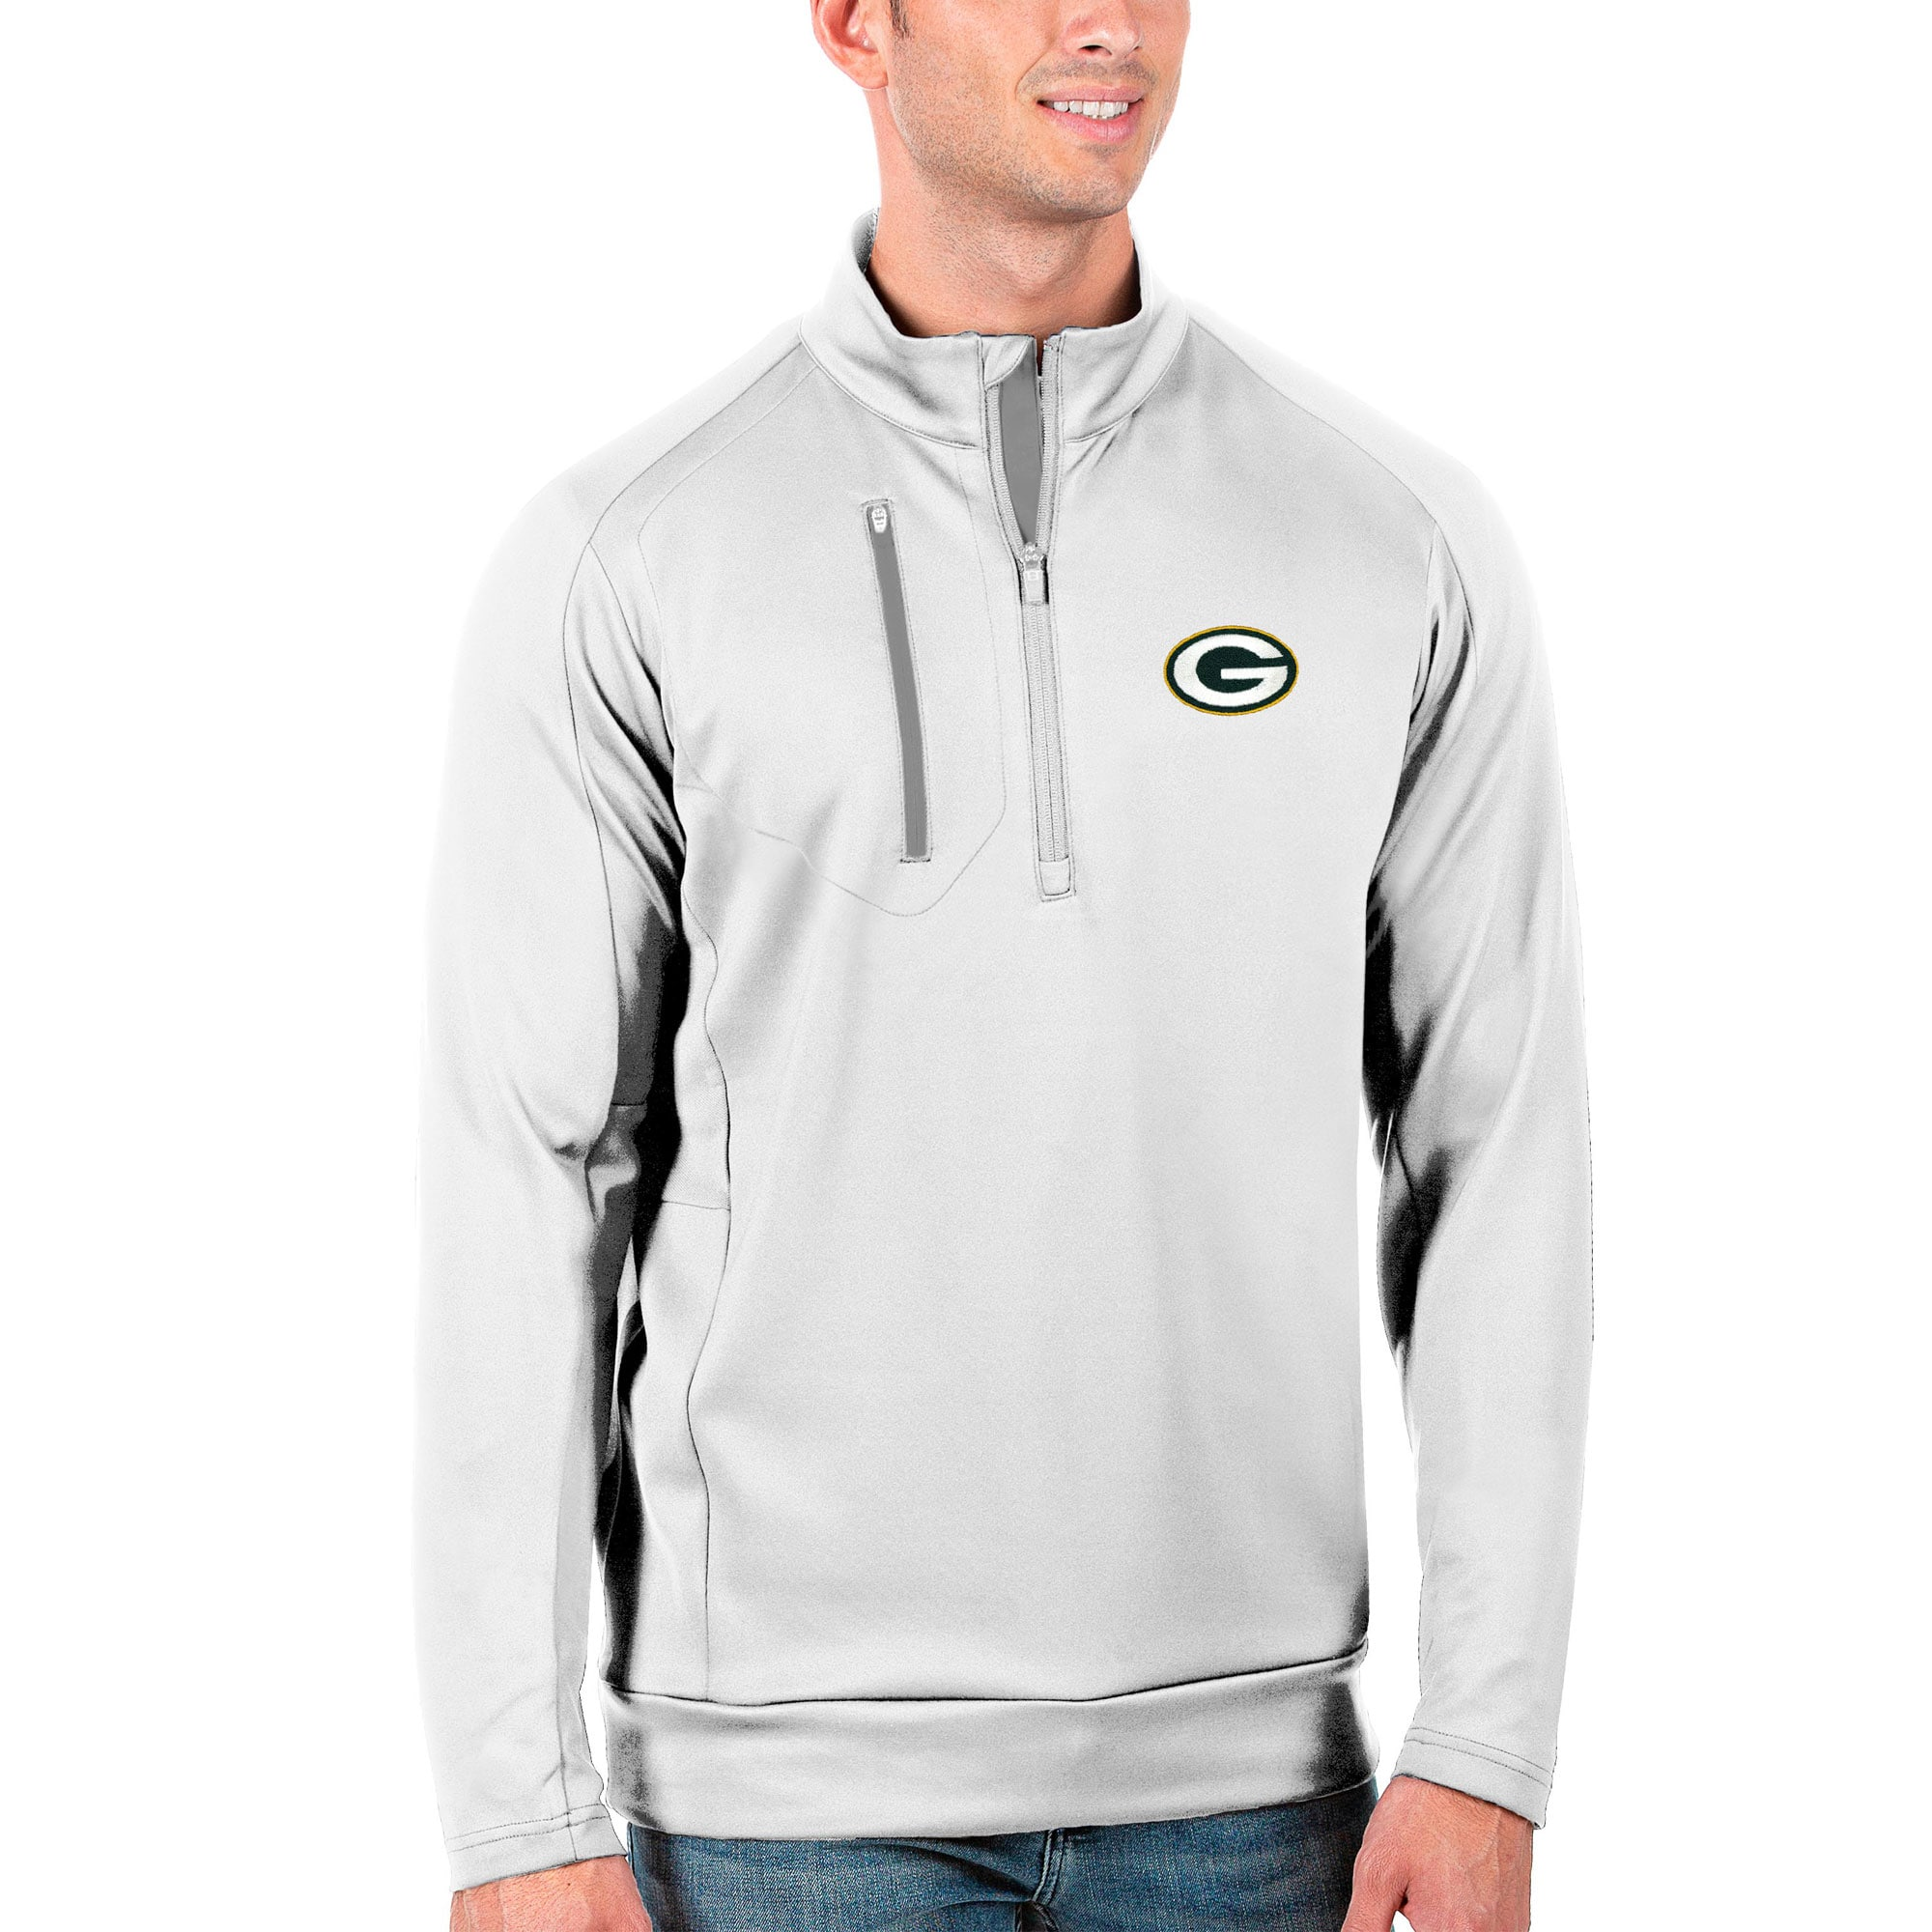 Green Bay Packers Antigua Generation Quarter-Zip Pullover Jacket - White/Silver